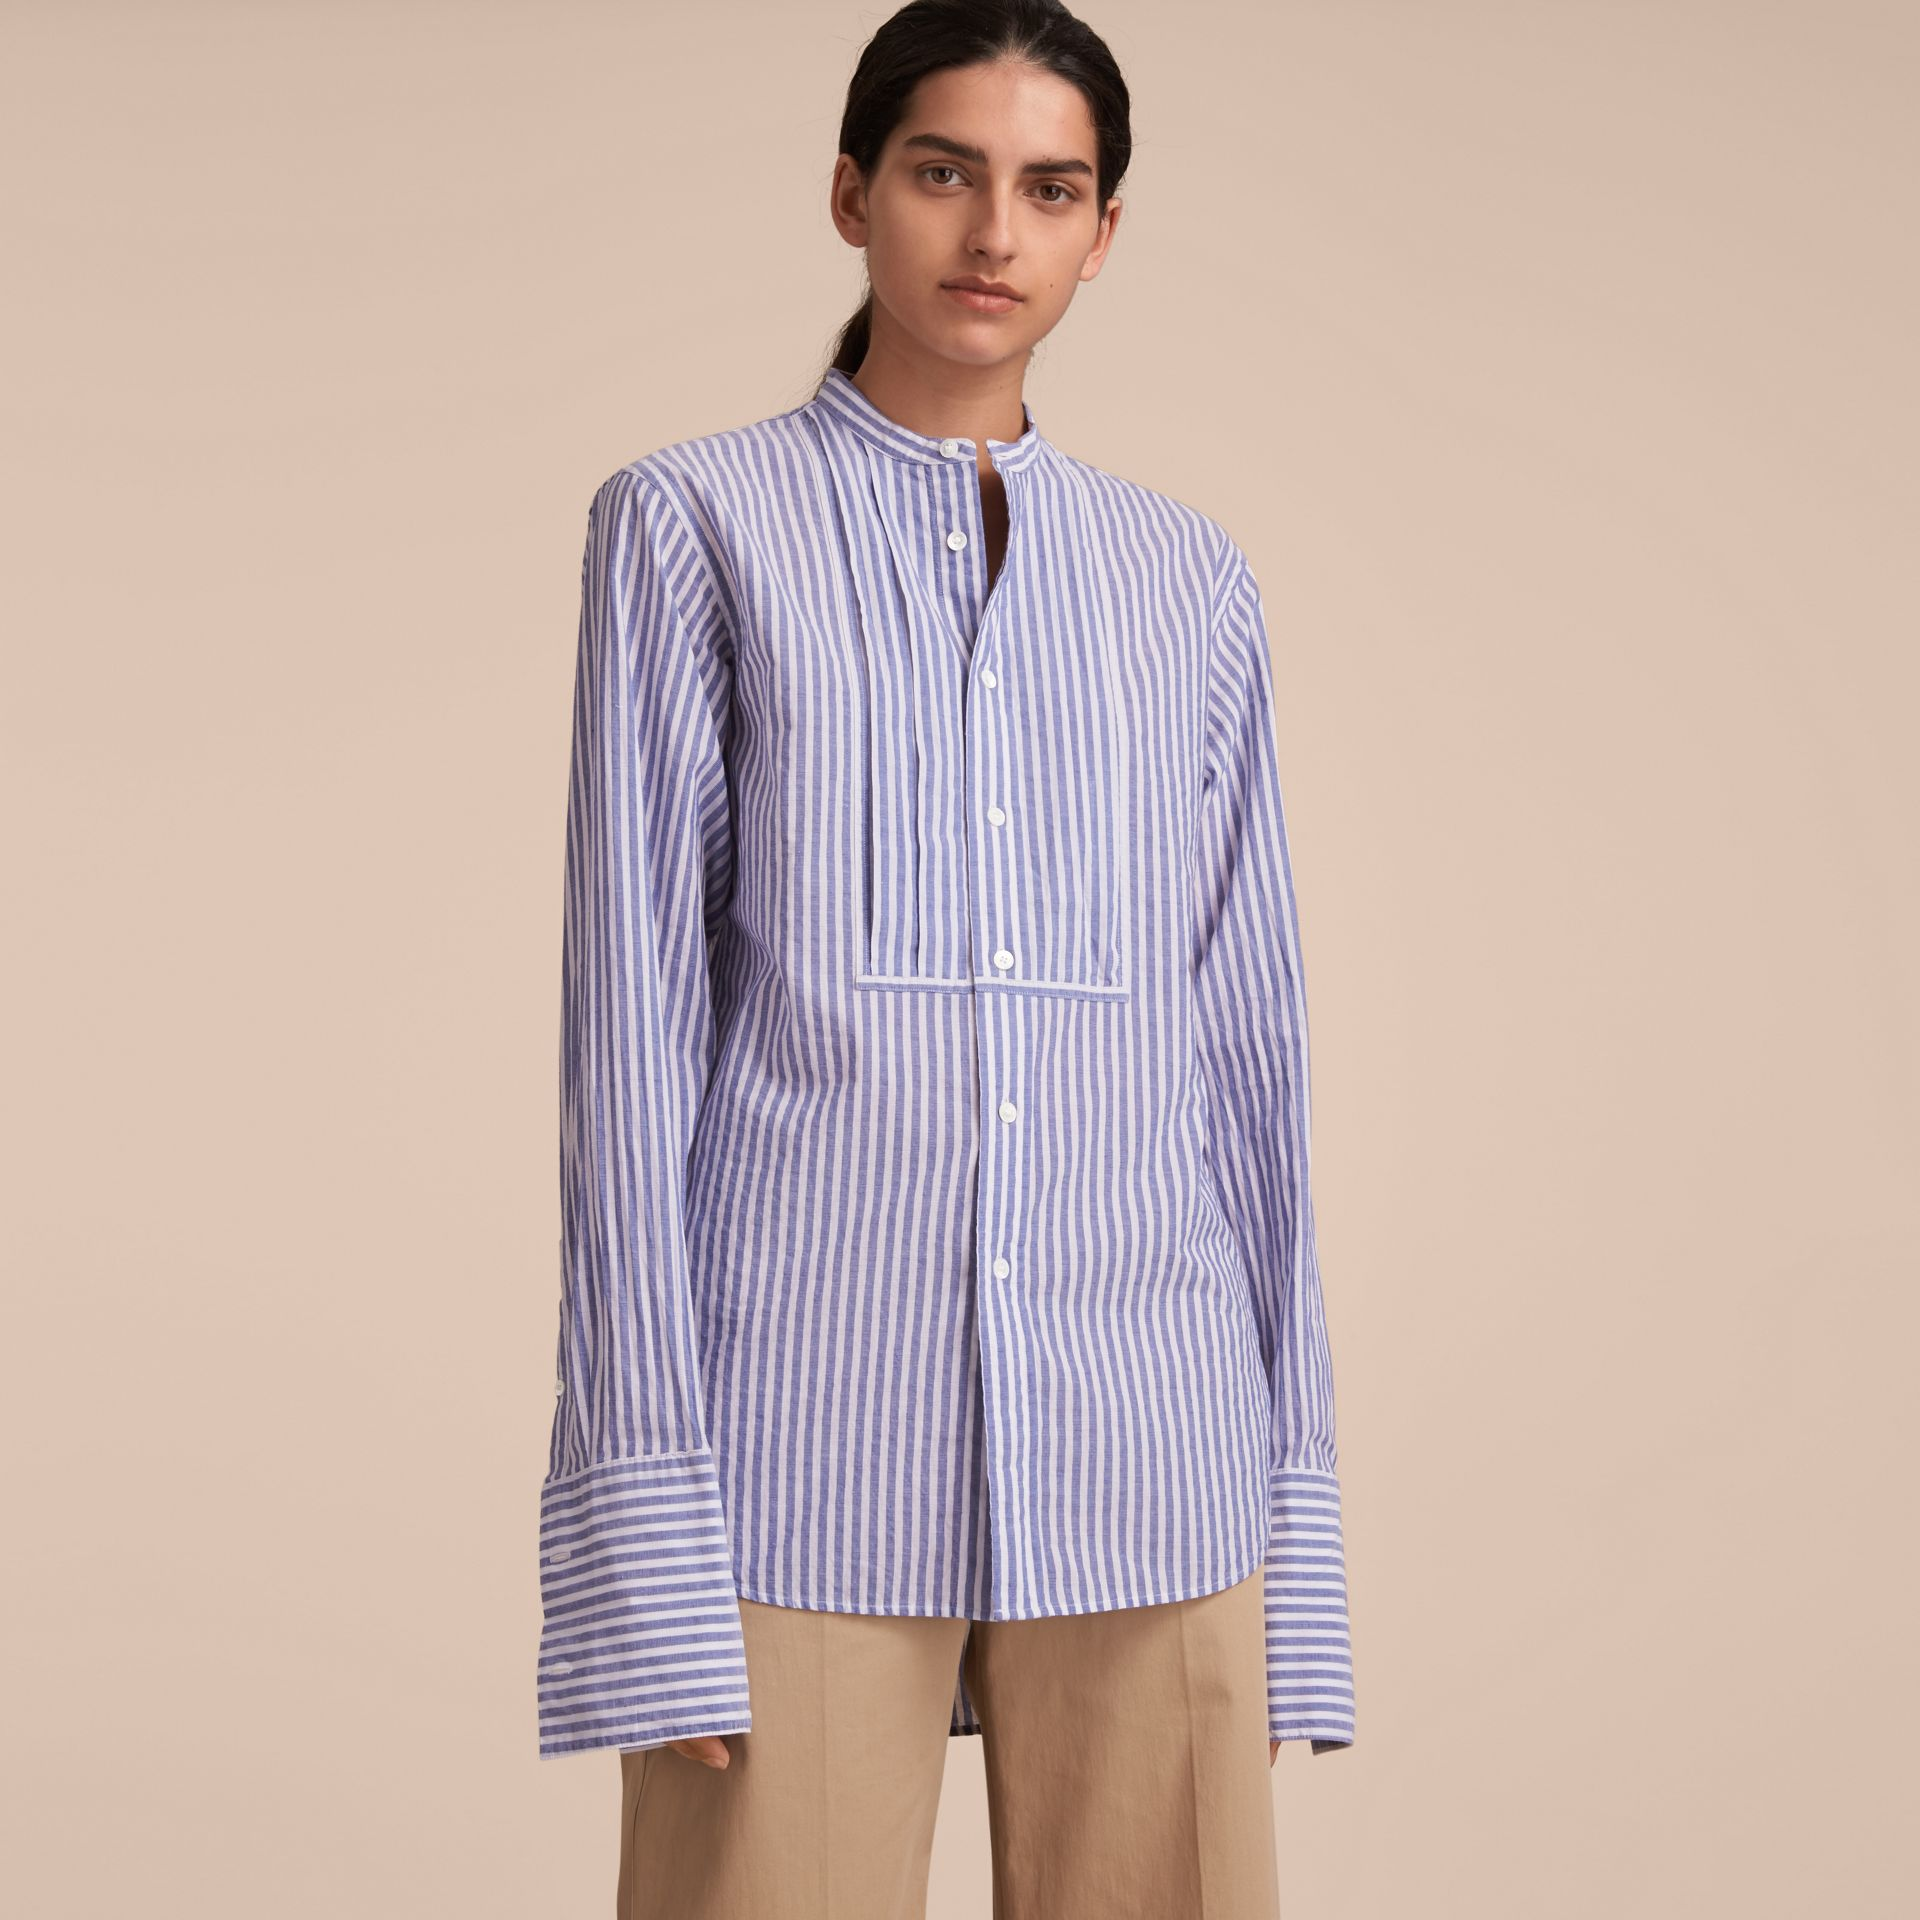 Unisex Grandad Collar Pleated Bib Striped Cotton Shirt in Pale Blue/white - Women | Burberry United Kingdom - gallery image 7